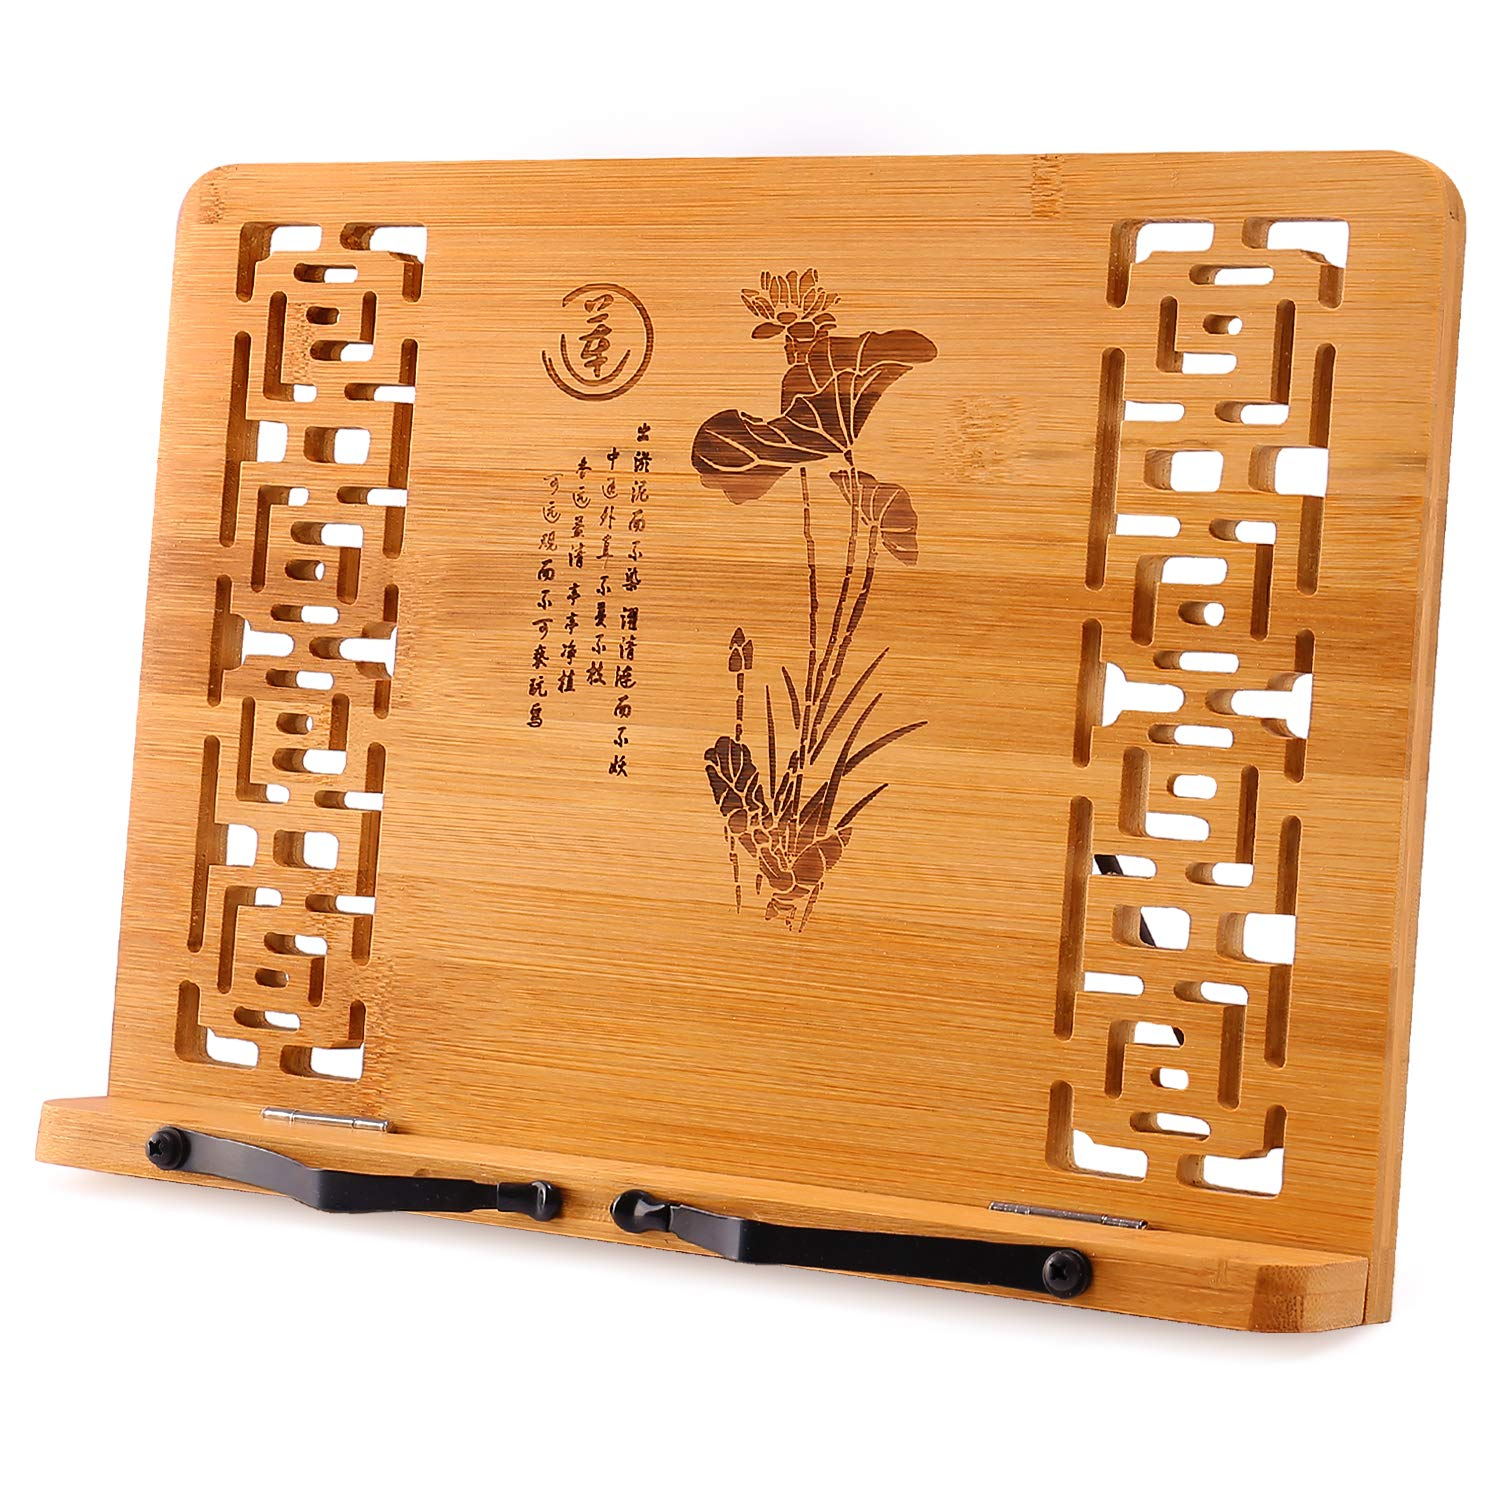 Megrez Bamboo Foldable Book Stand (13 x 9.4 inch) Reading Frame Rest Holder Cookbook Cook Stand/iPad Tablet PC Textbook/Music Document Stand/Desk Bookrest with Retro Hollow, Lotus Flower Pattern by Megrez